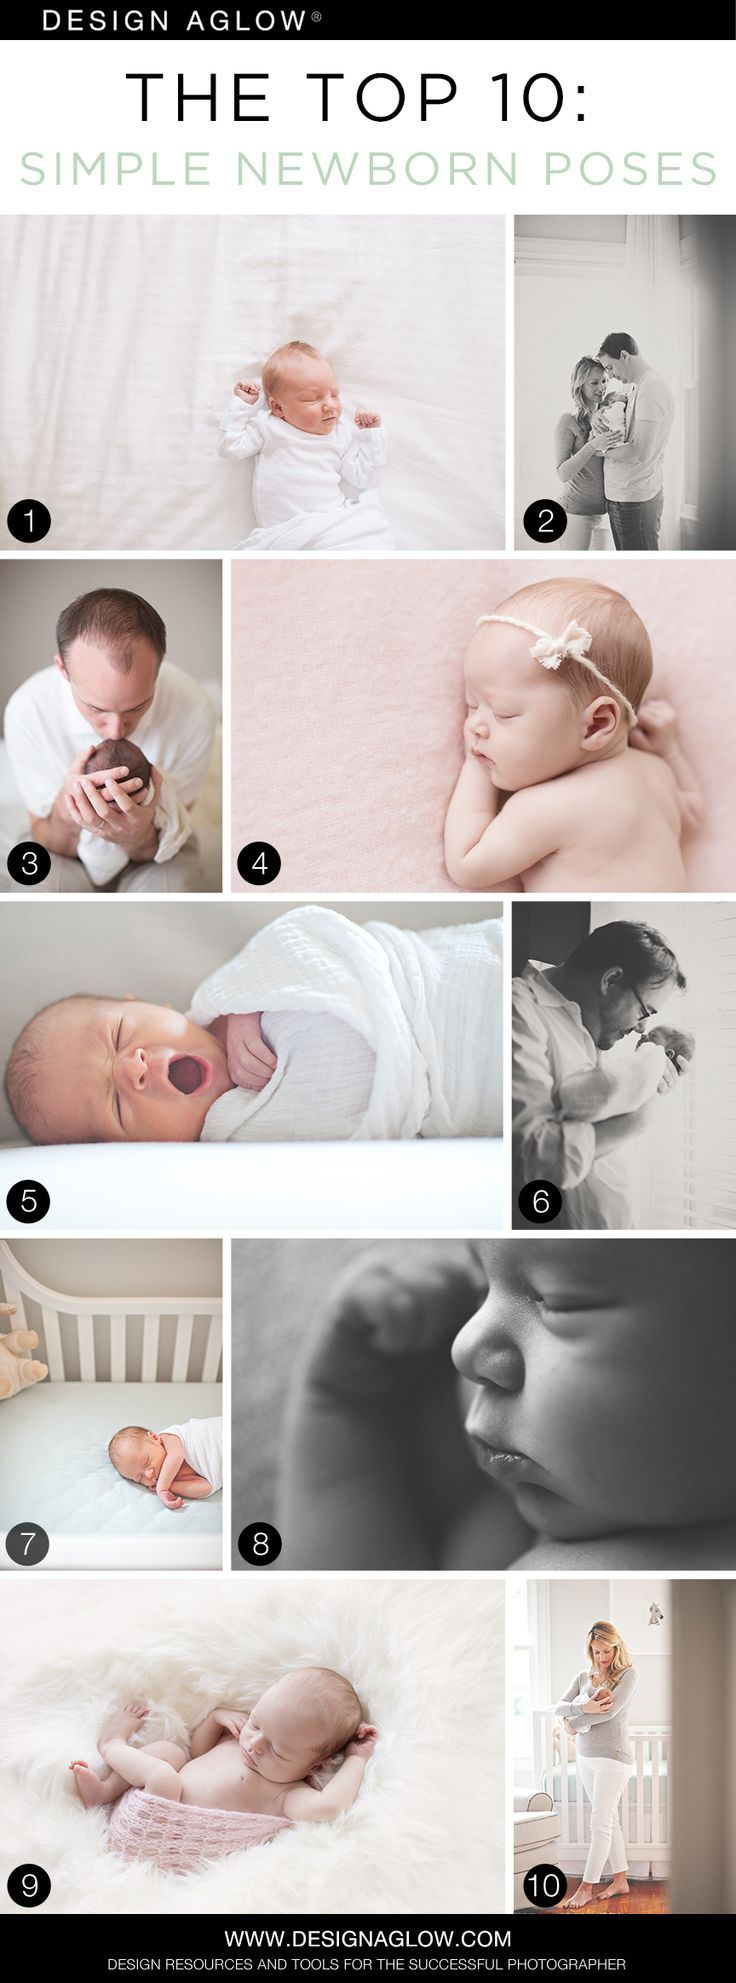 The Top 10: Simple Newborn Poses #designaglow